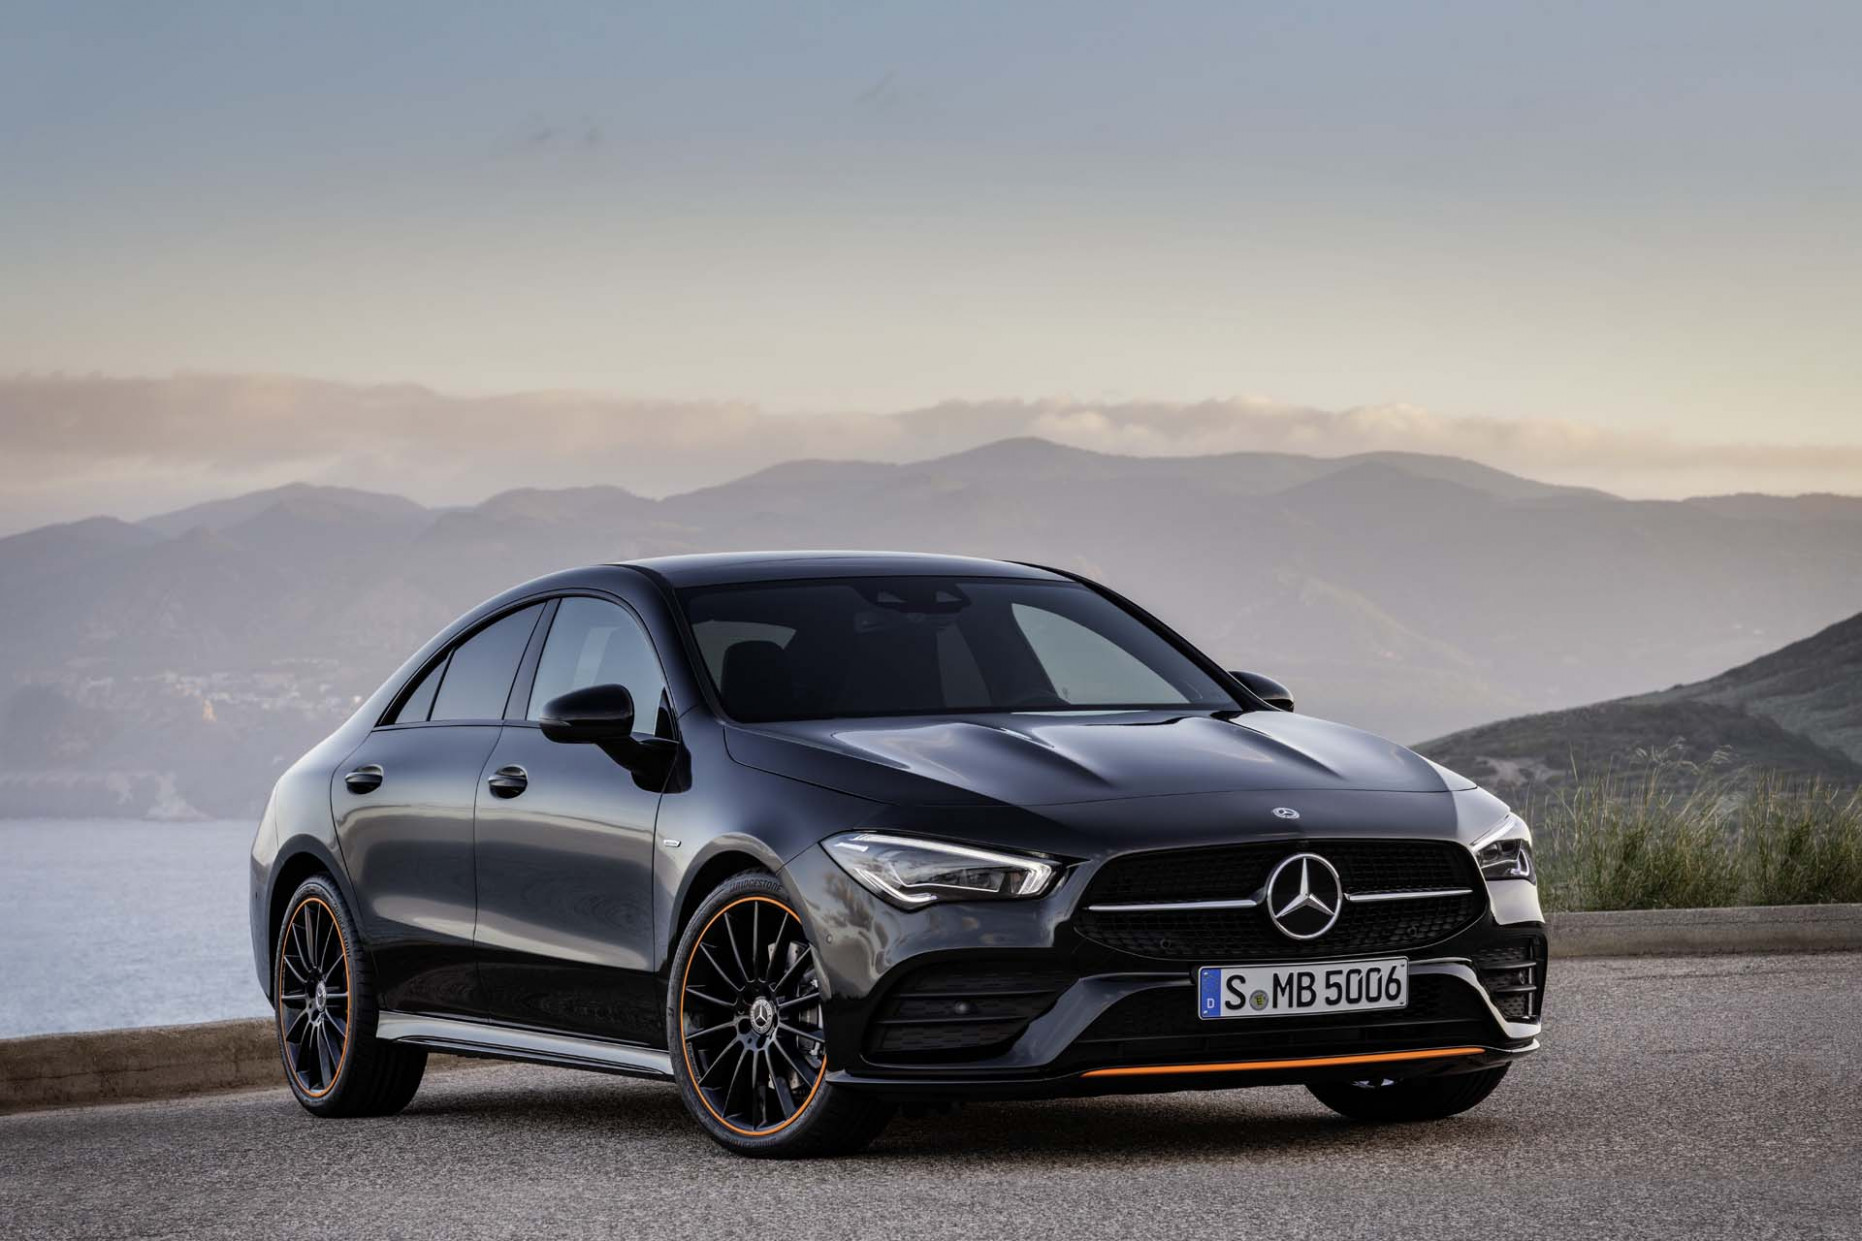 7 Mercedes-Benz CLA Class Review, Ratings, Specs, Prices, and ..